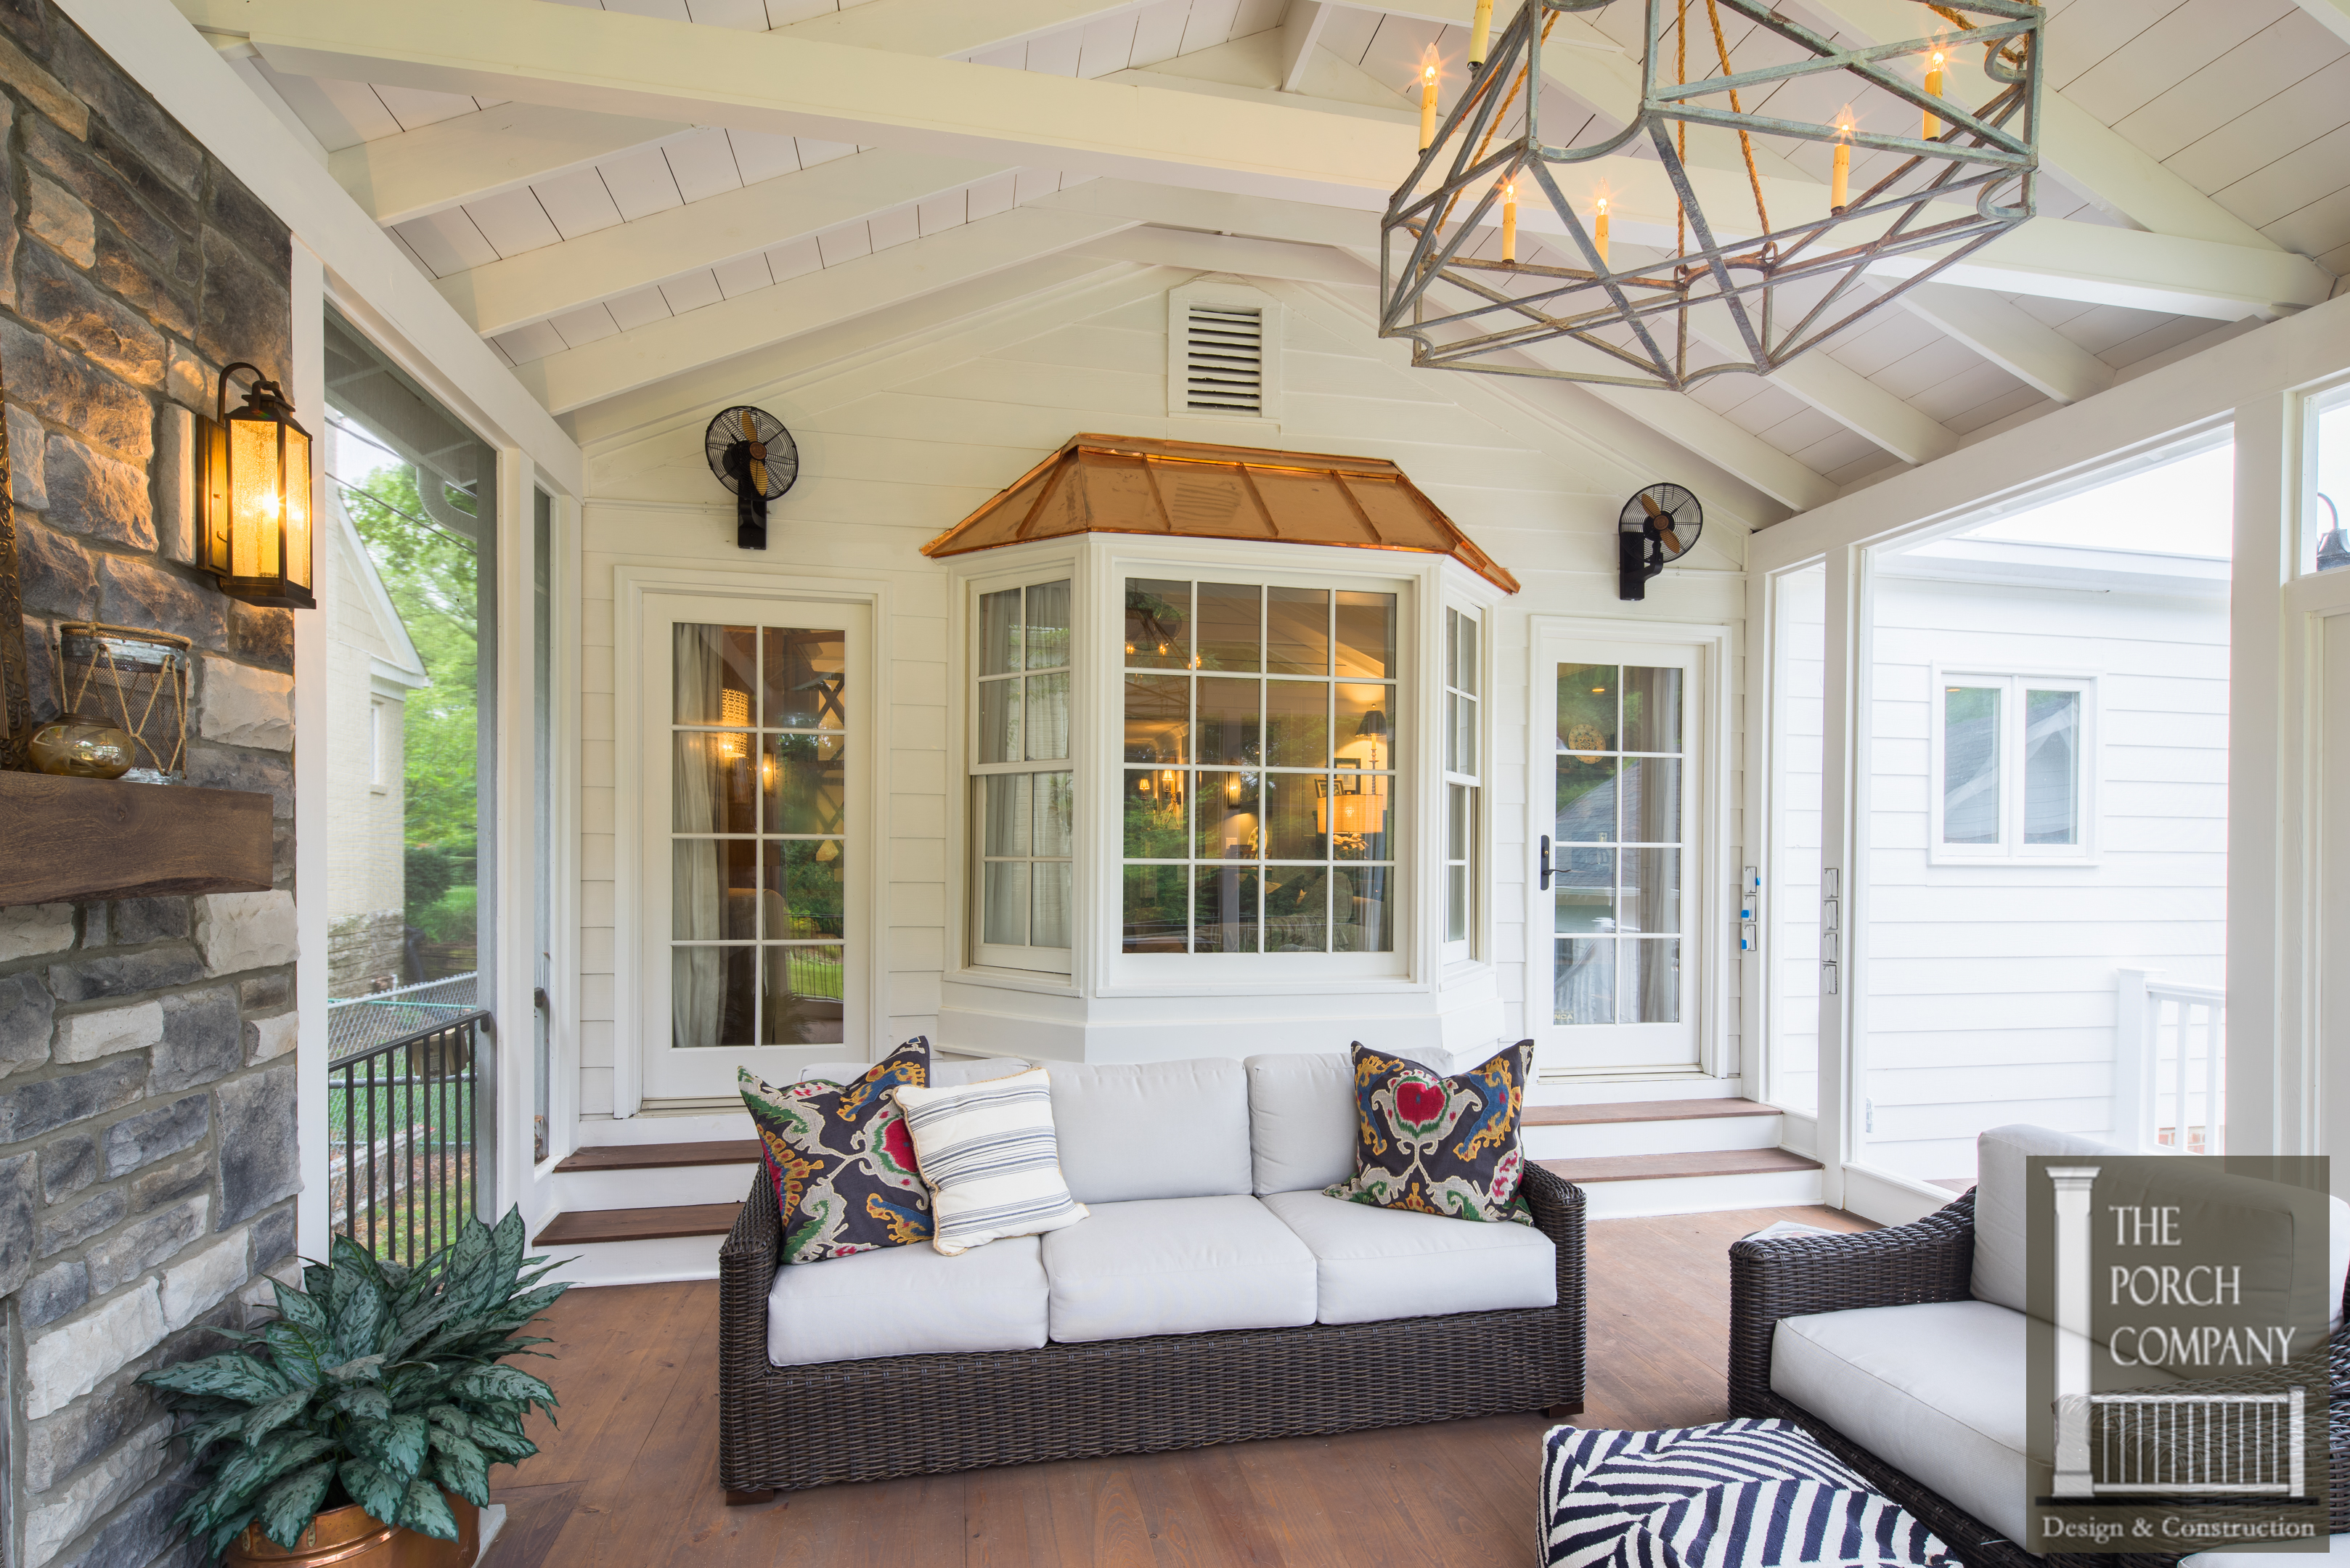 great garage door ideas - Screened Porch and Garage Oasis The Porch panyThe